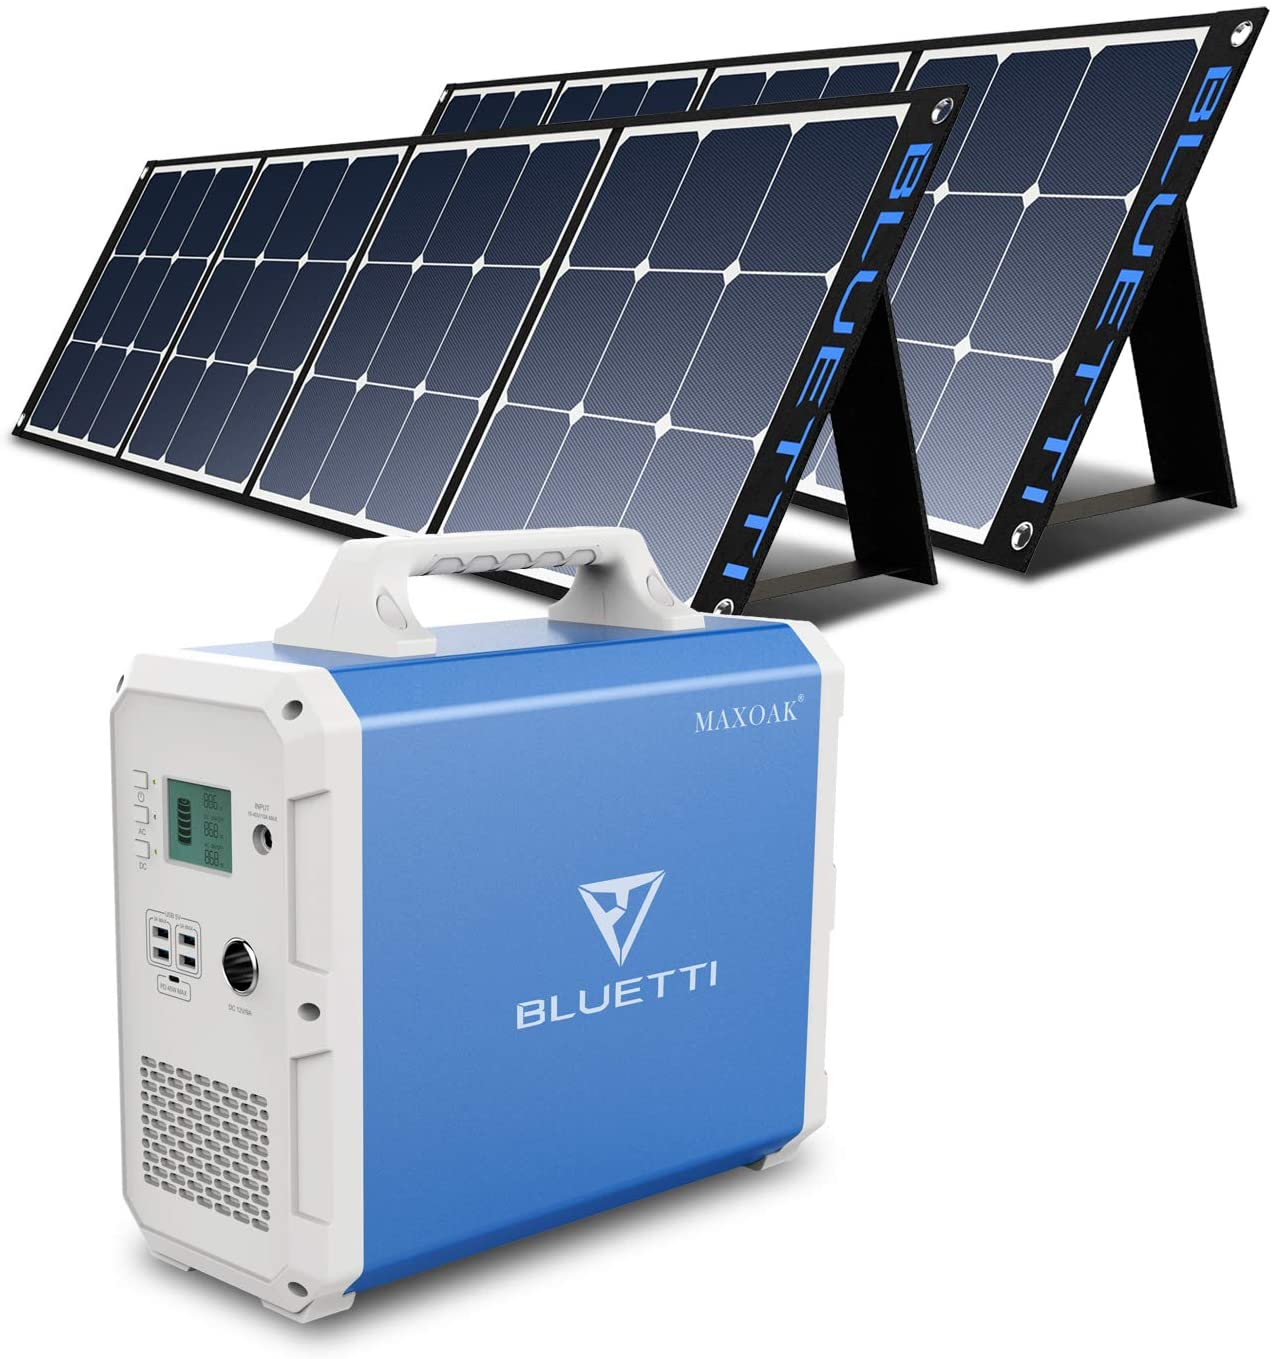 Max 85% OFF BLUETTI EB240 Portable Power Station Pane 2pcs Solar Discount is also underway with 2400Wh